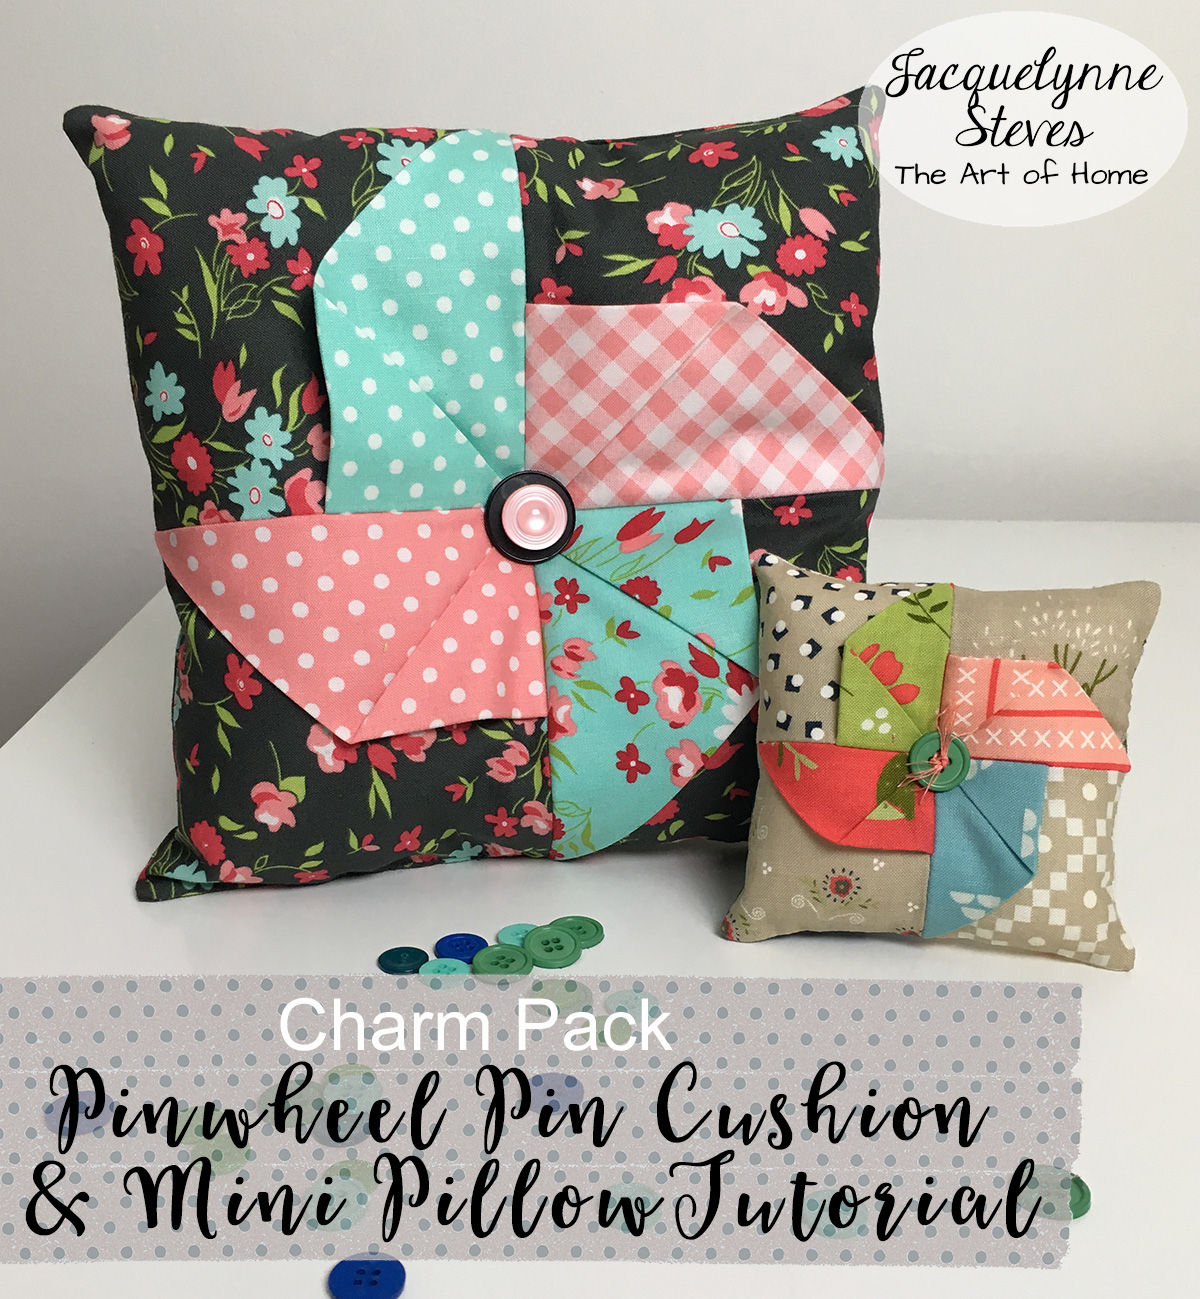 Pinwheel Pin Cushion & Mini Pillow Tutorial